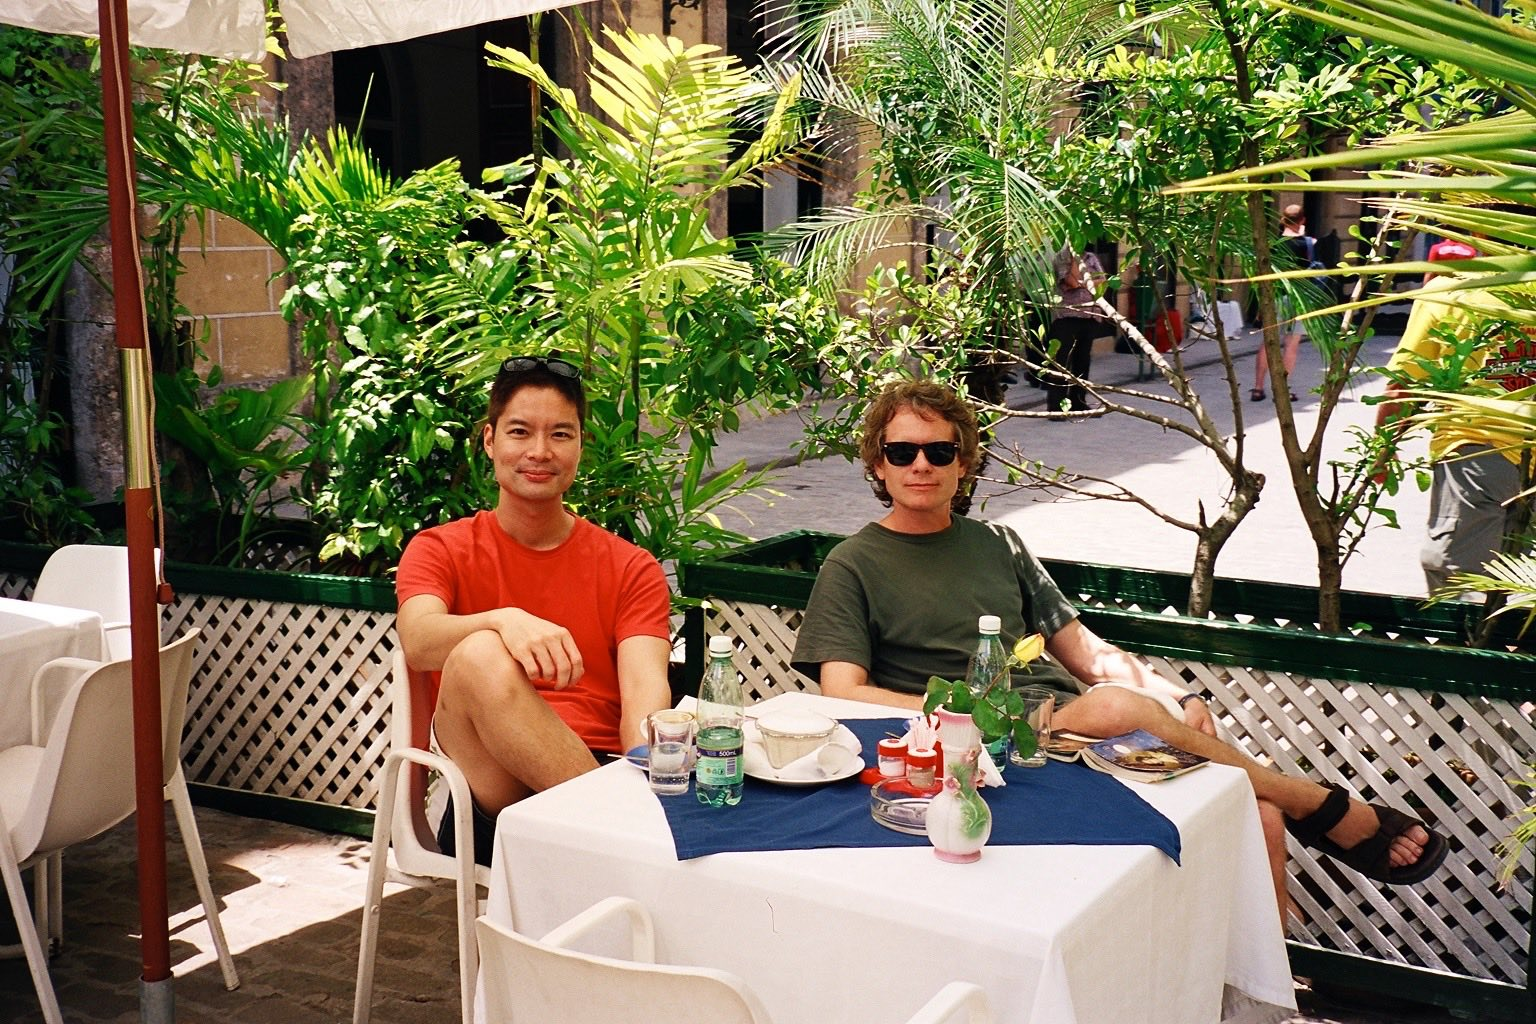 With Greg in the old town of Havana, 2004.